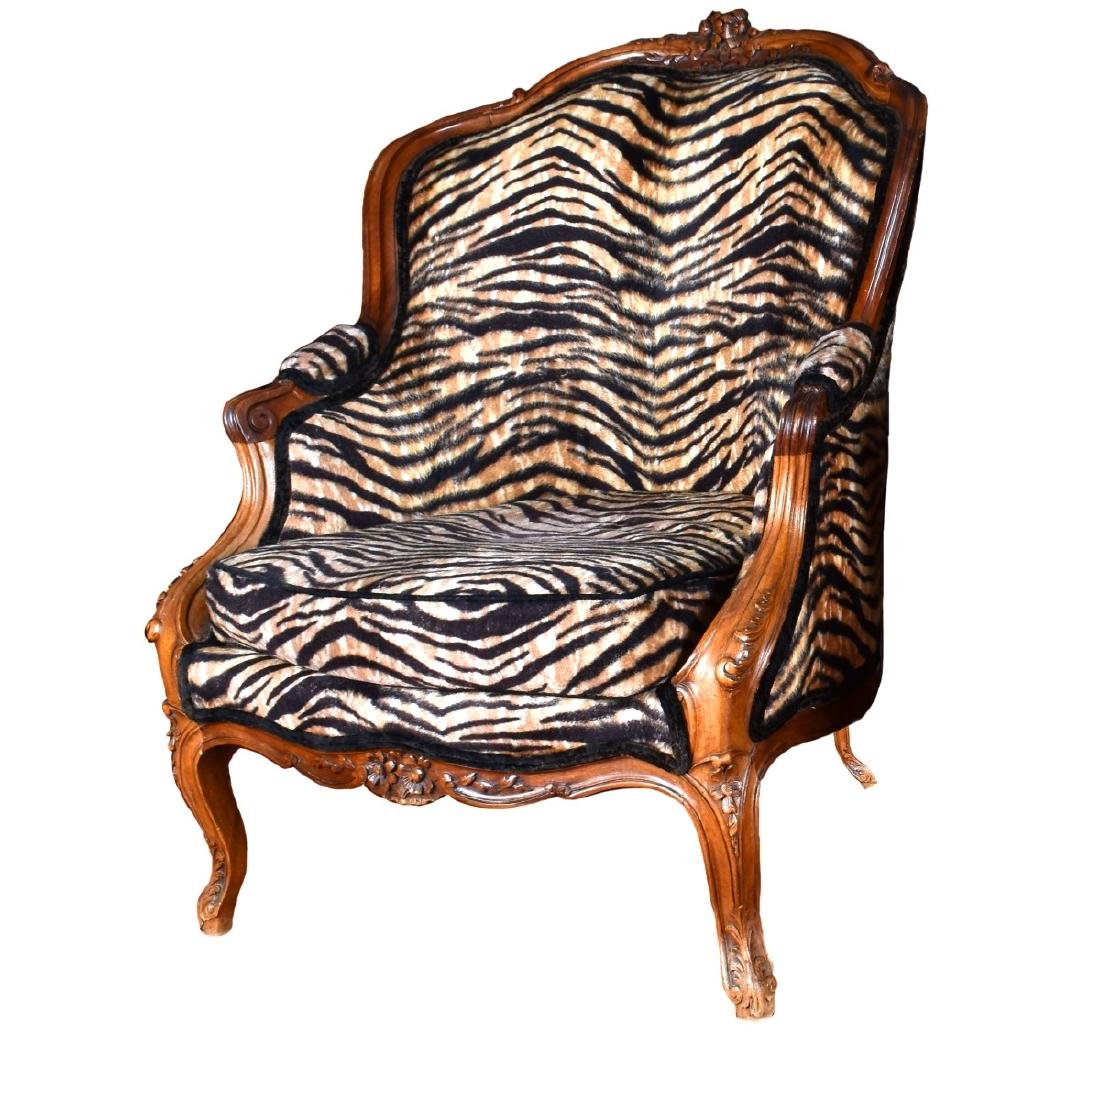 Antique French Carved Walnut Armchairs - 5